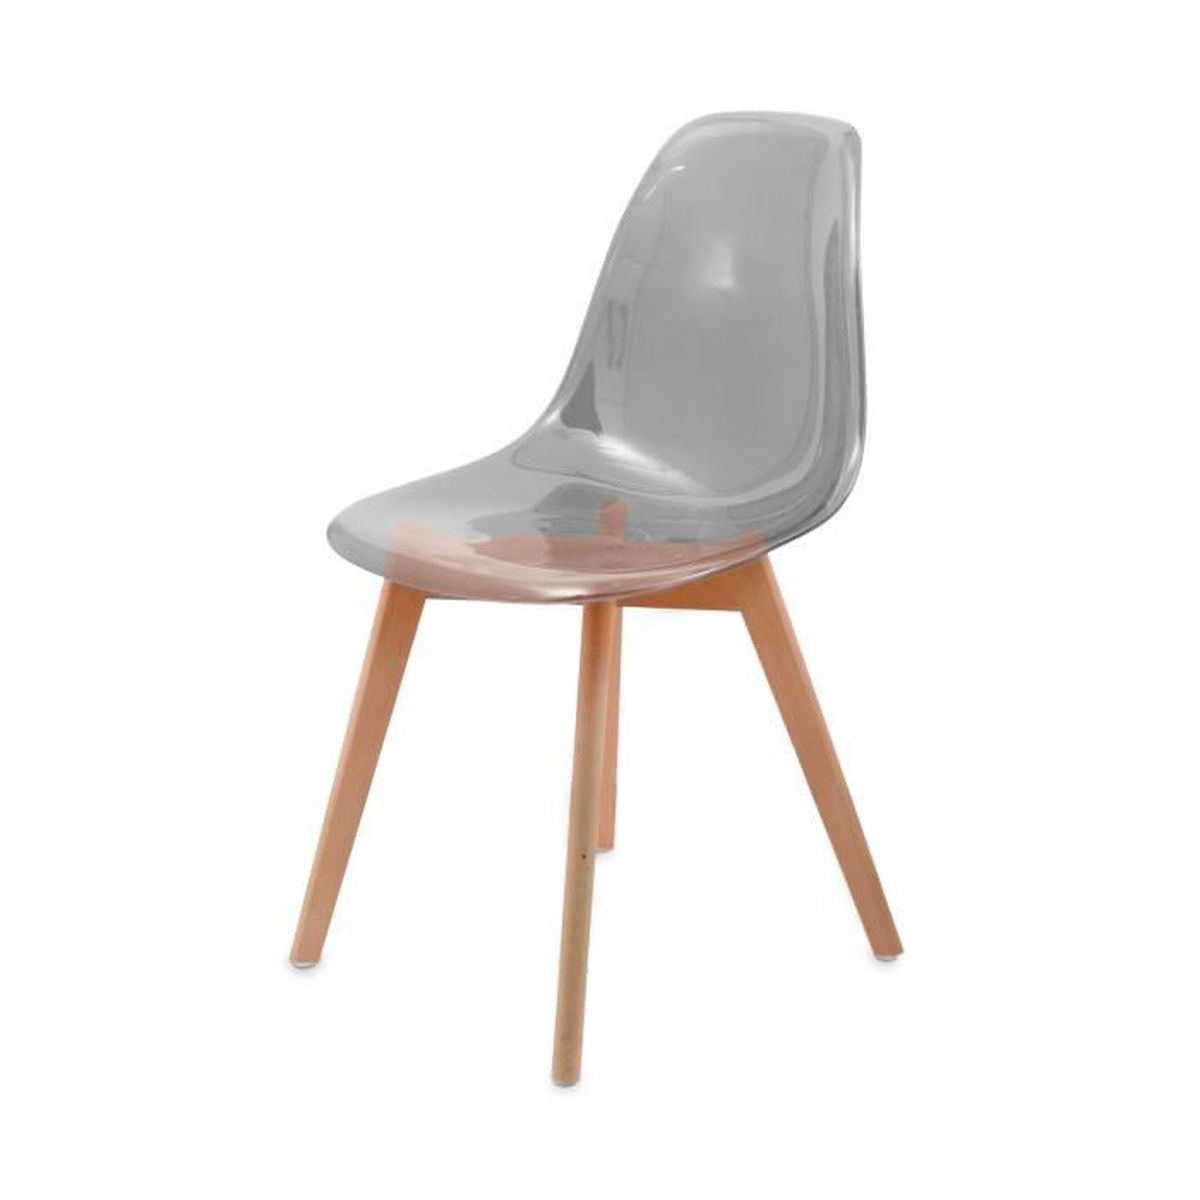 Chaise transparente scandinave gasoline avec pieds en bois d 39 h tre light - Chaise transparente discount ...